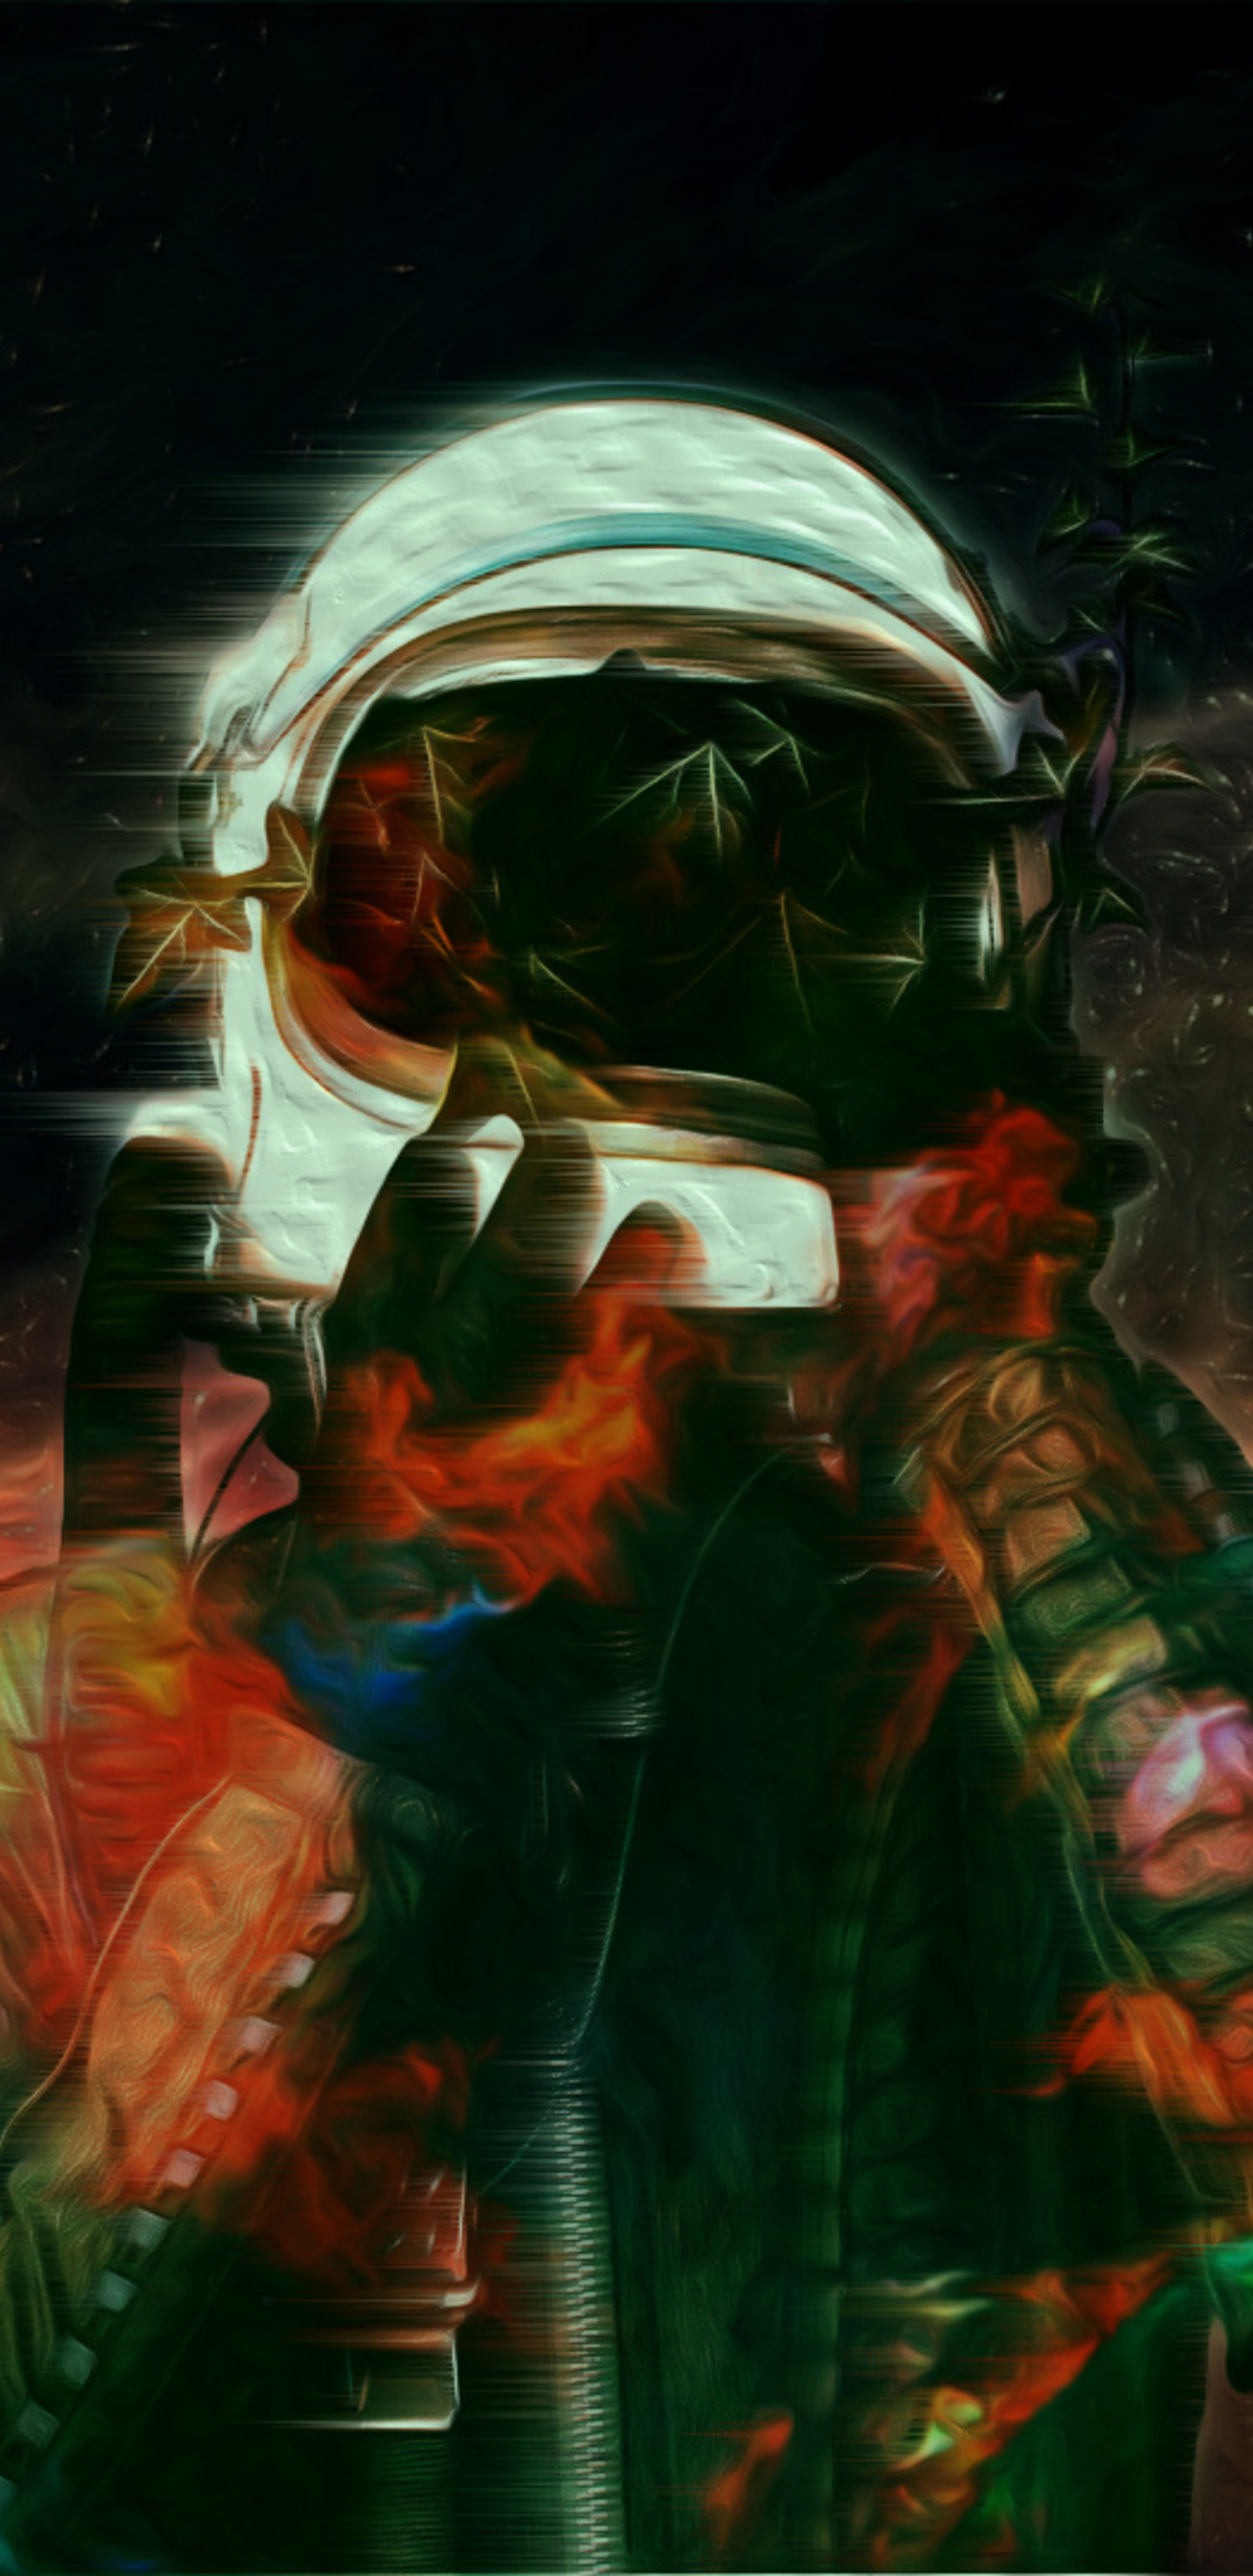 astronaut-space-abstract-zm.jpg